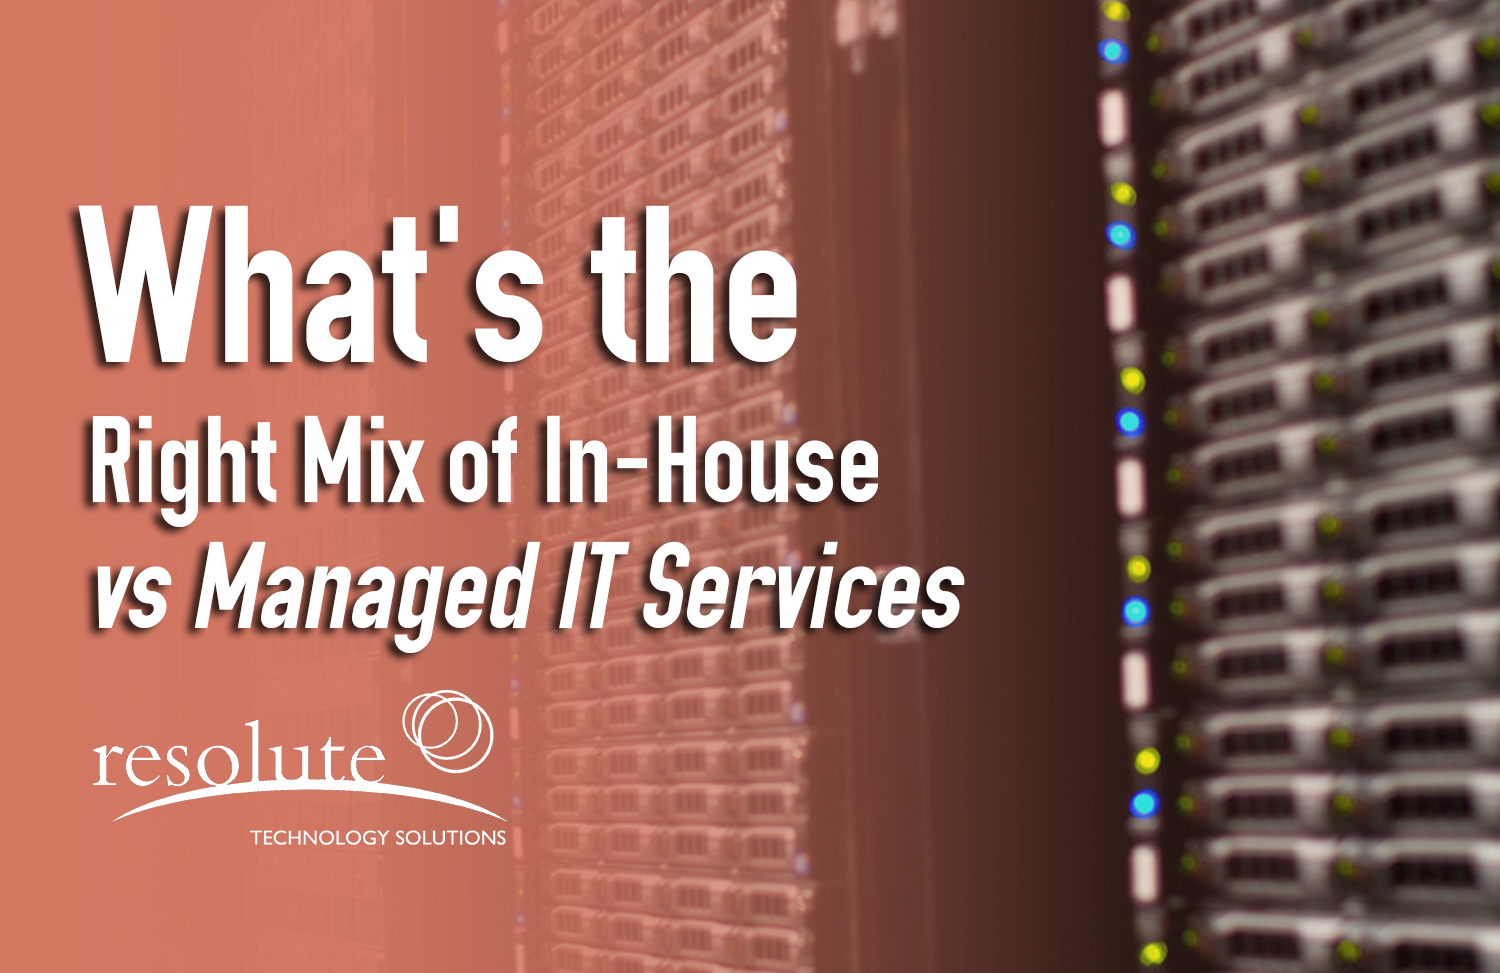 What's the Right Mix of In-House vs Managed IT Services